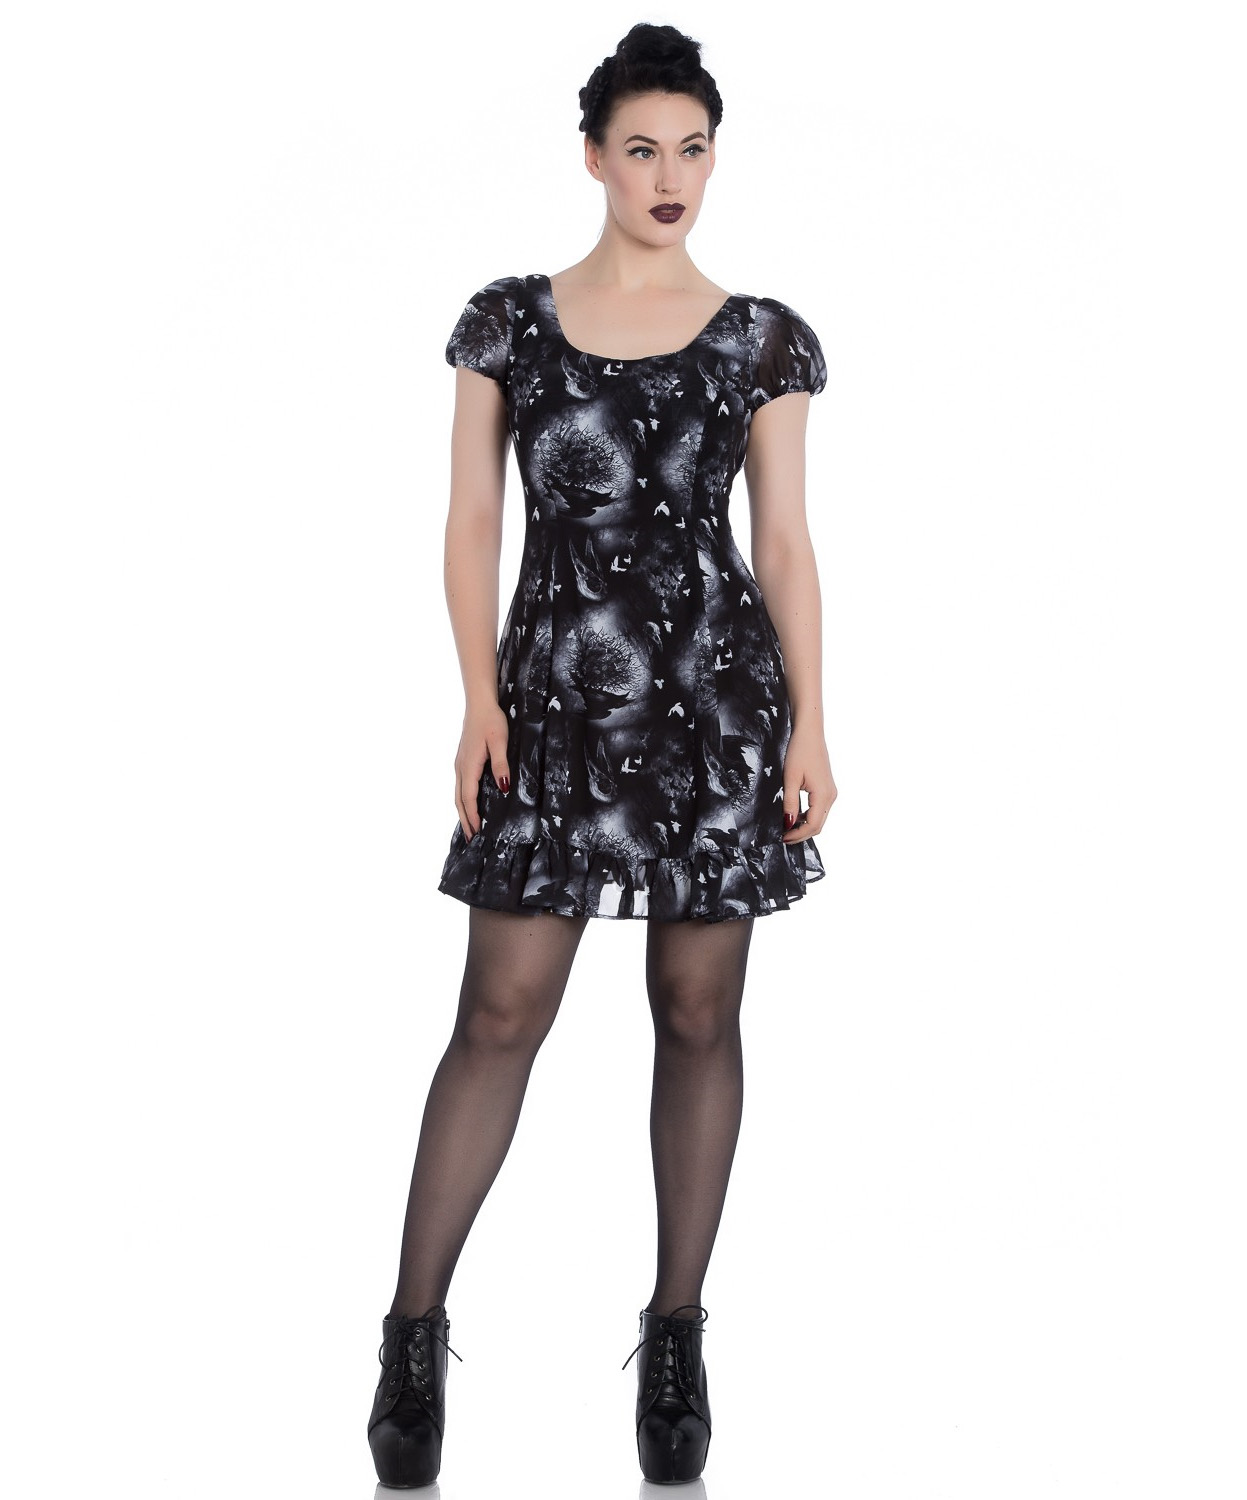 Hell-Bunny-Alchemy-Gothic-Black-Skater-Mini-Dress-ASH-Crows-Skulls-All-Sizes thumbnail 3